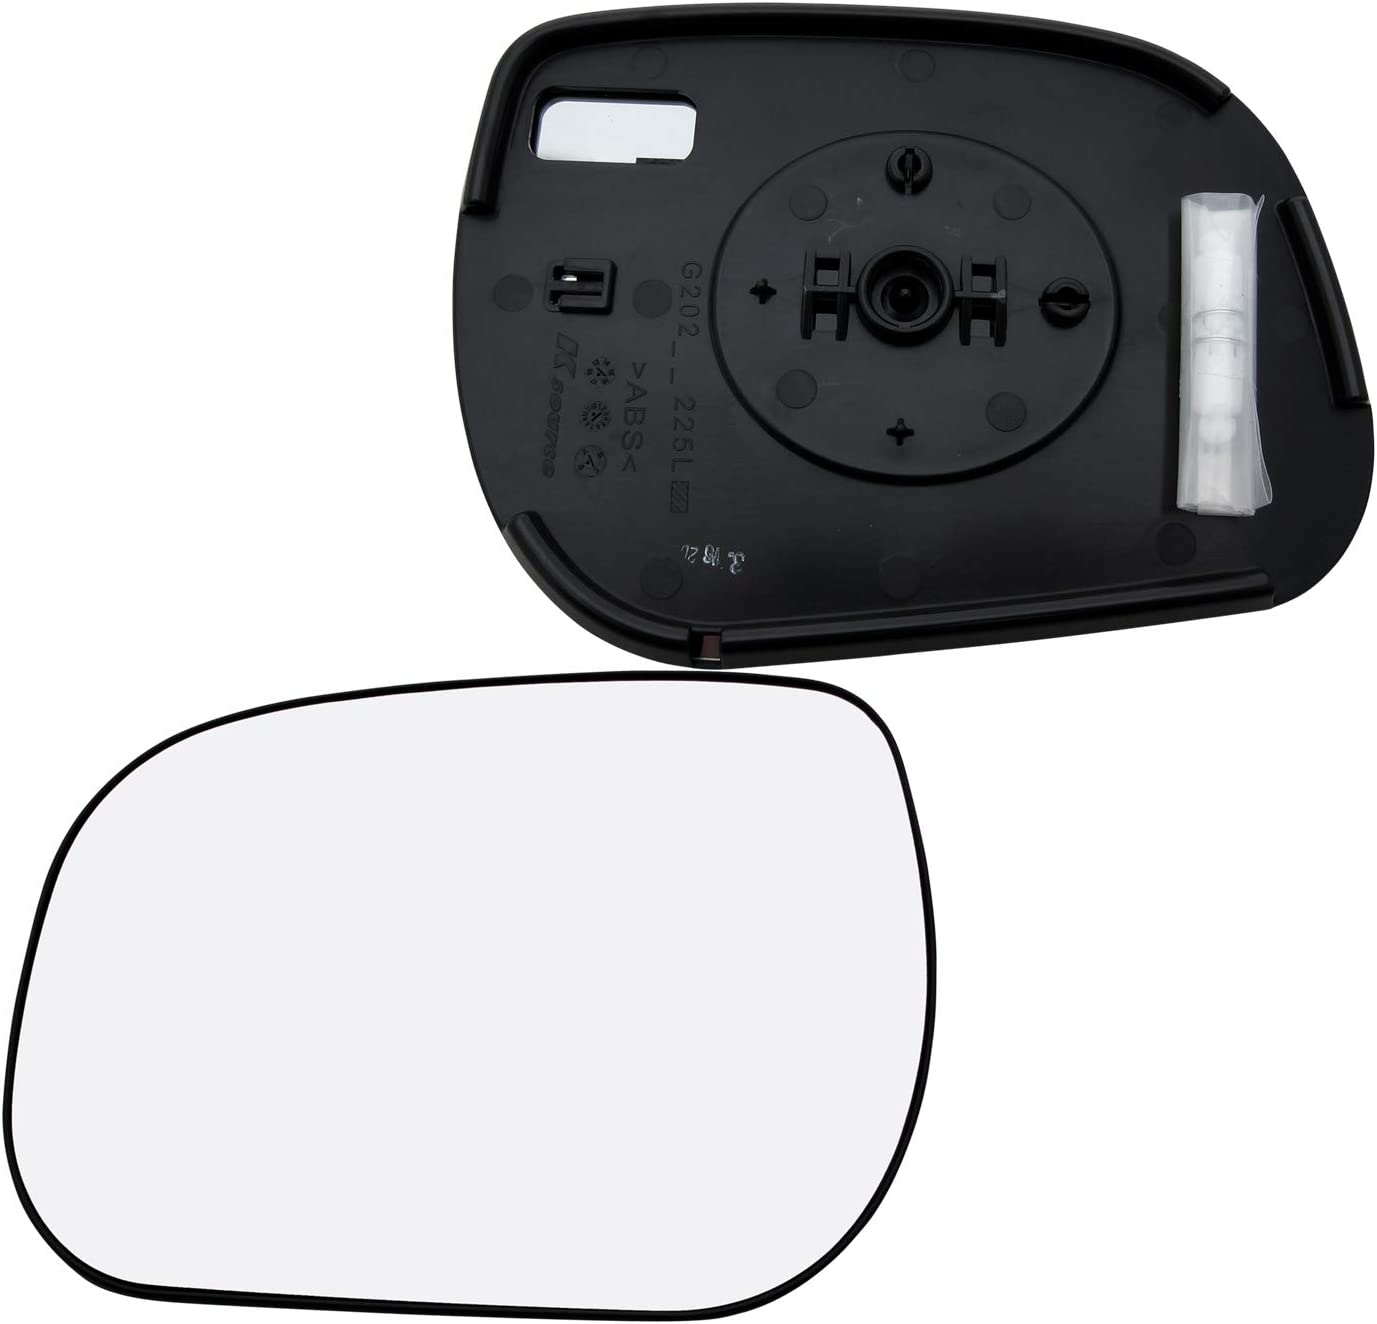 New Replacement Driver Side Mirror Glass W Backing Compatible With 2009 2010 2011 2012 Toyota RAV4 Sold By Rugged TUFF